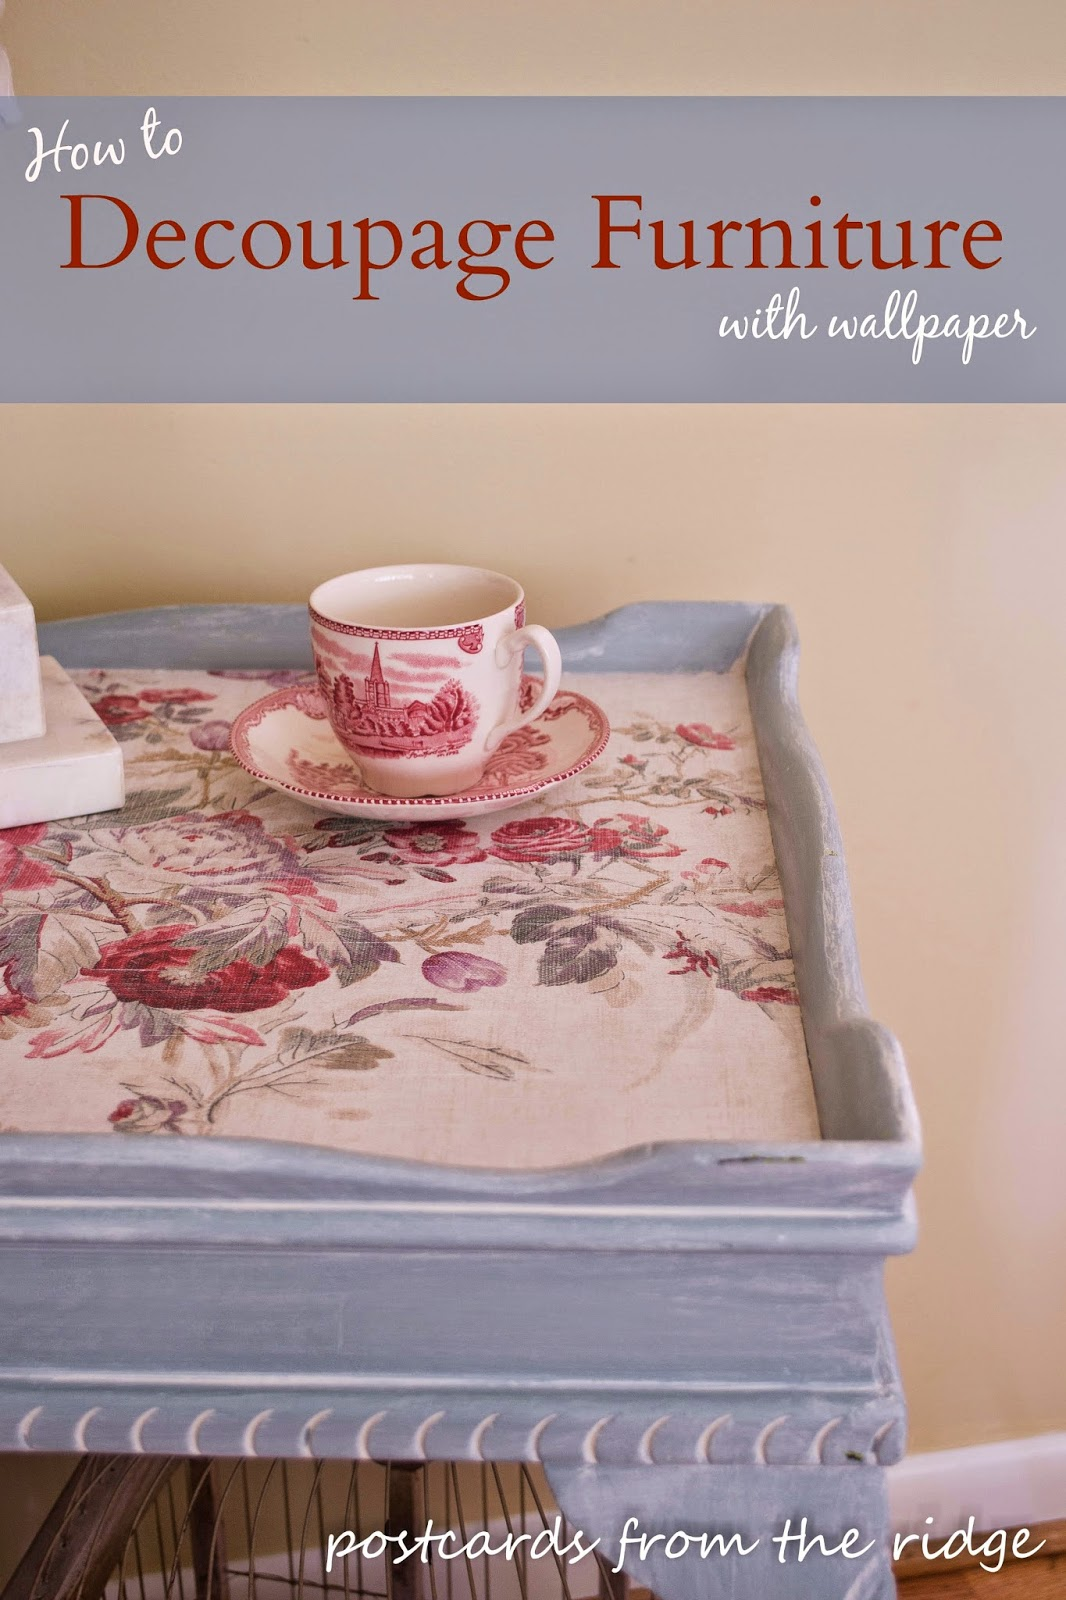 How to decoupage with wallpaper plus tips for whitewashing